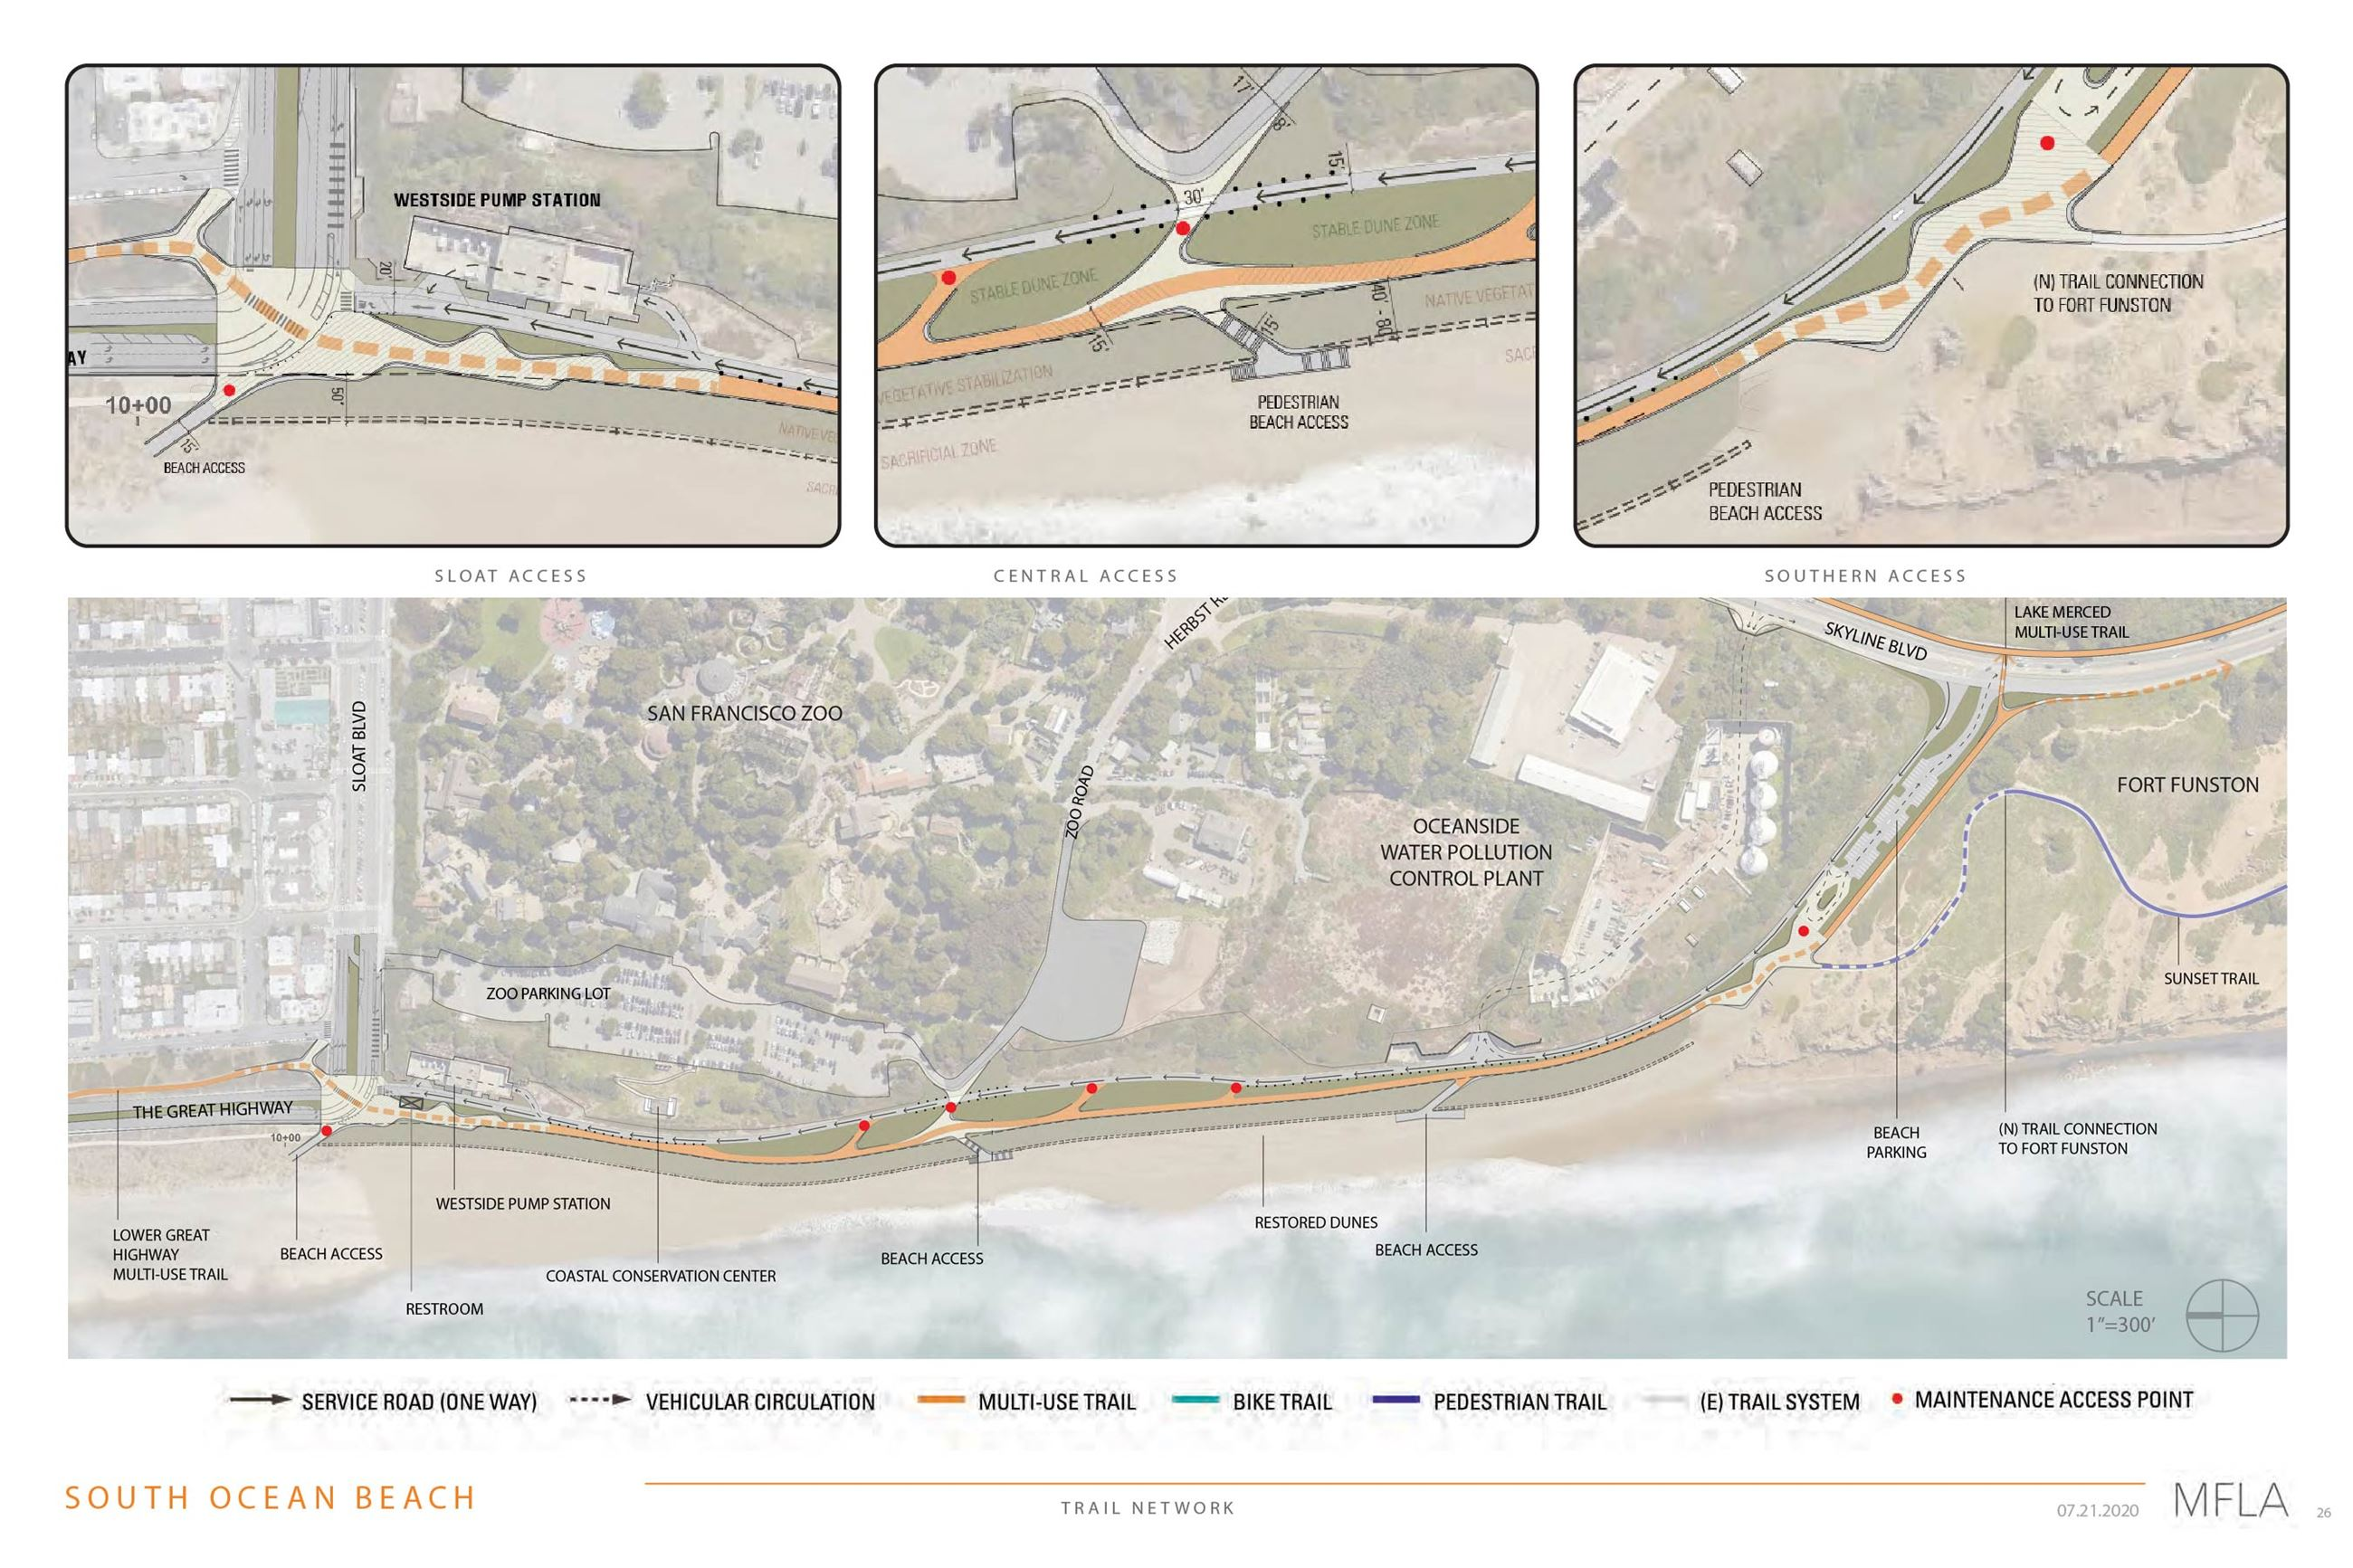 South Ocean Beach Key Map of proposed project area